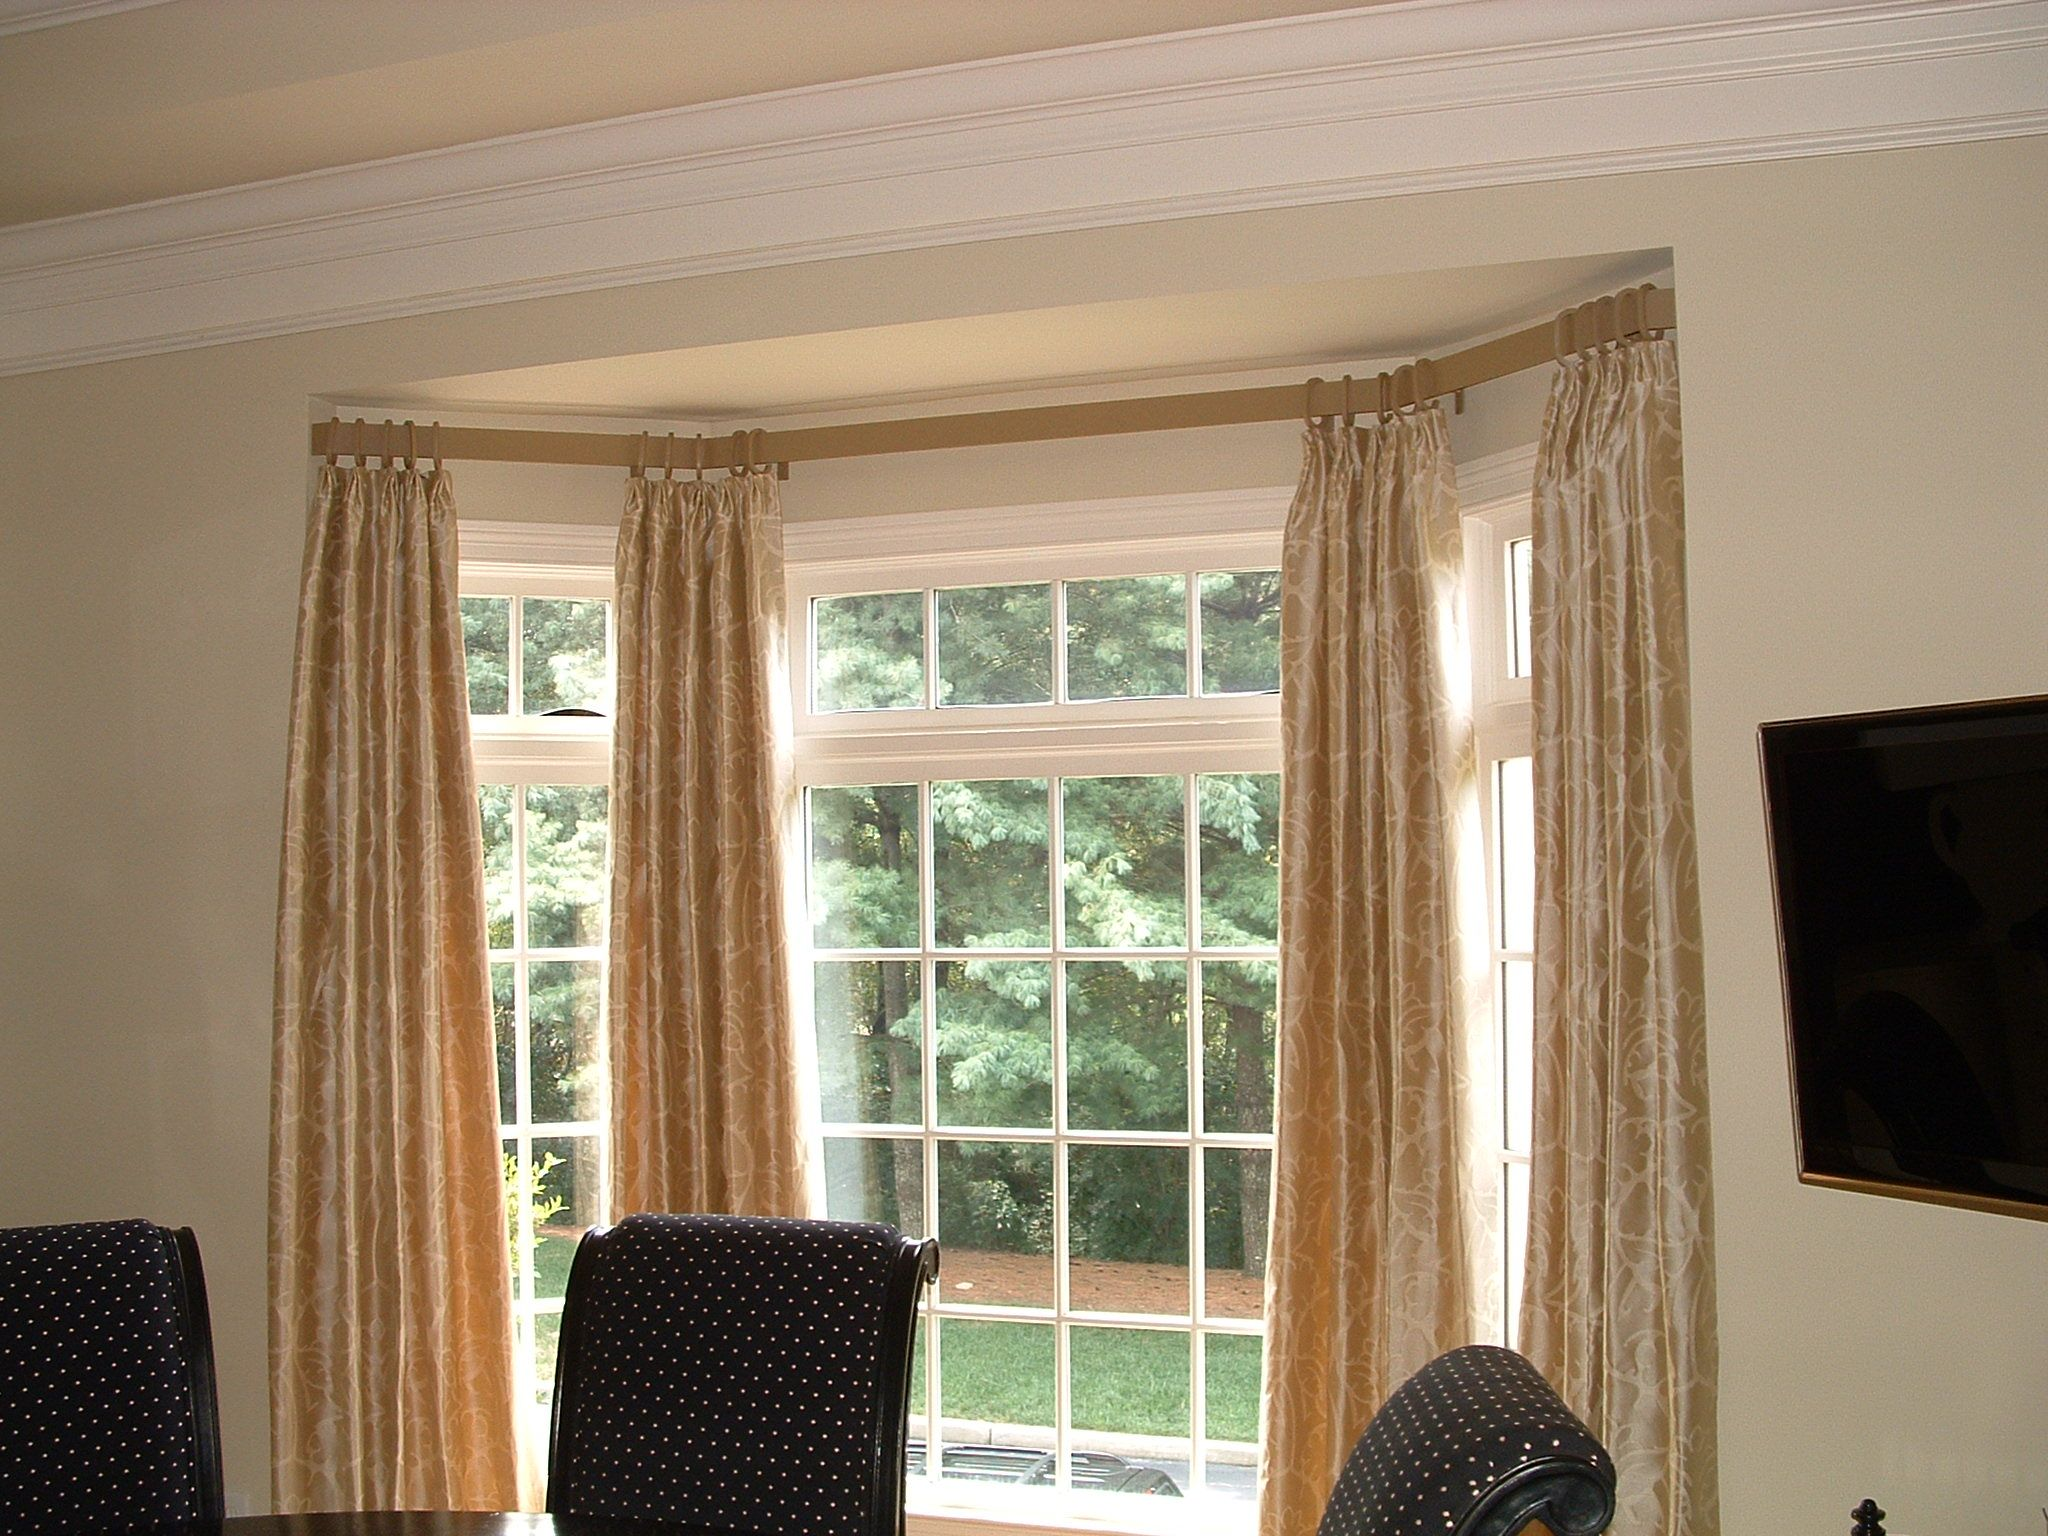 Curtain Rods In Bay Windows Bay Window Curtain Rod Ceiling